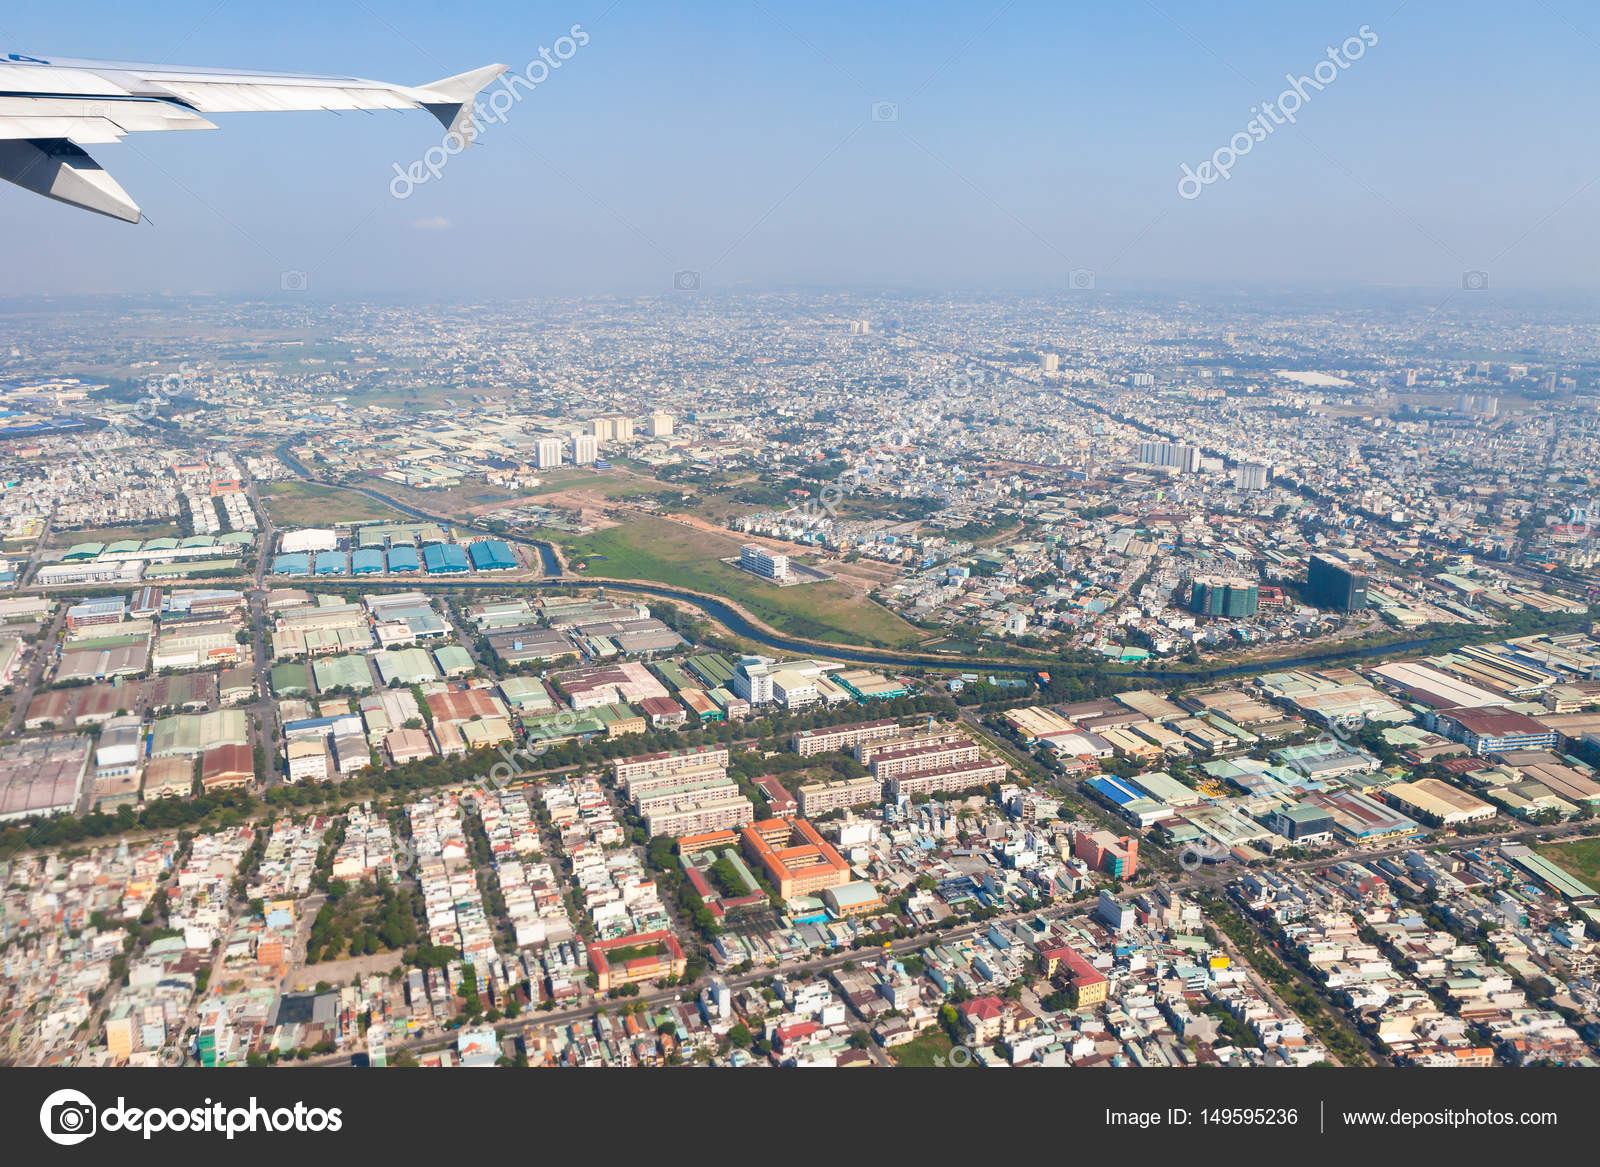 Saigon City Aerial View From The Plane Taking Off Stock Photo